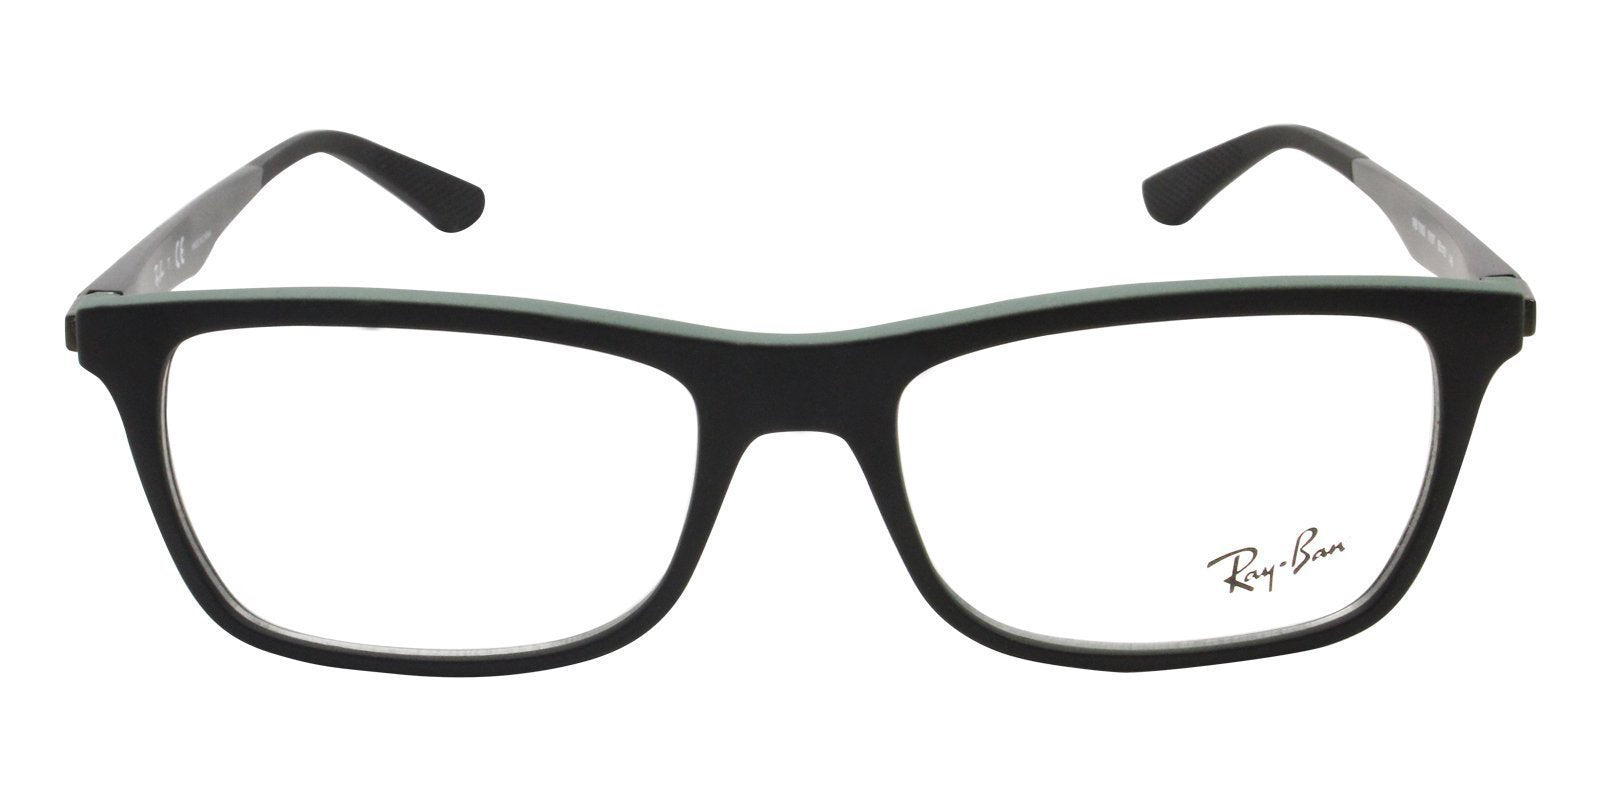 Ray Ban Rx - RX7062 Black Rectangular Men Eyeglasses - 55mm-Eyeglasses-Designer Eyes